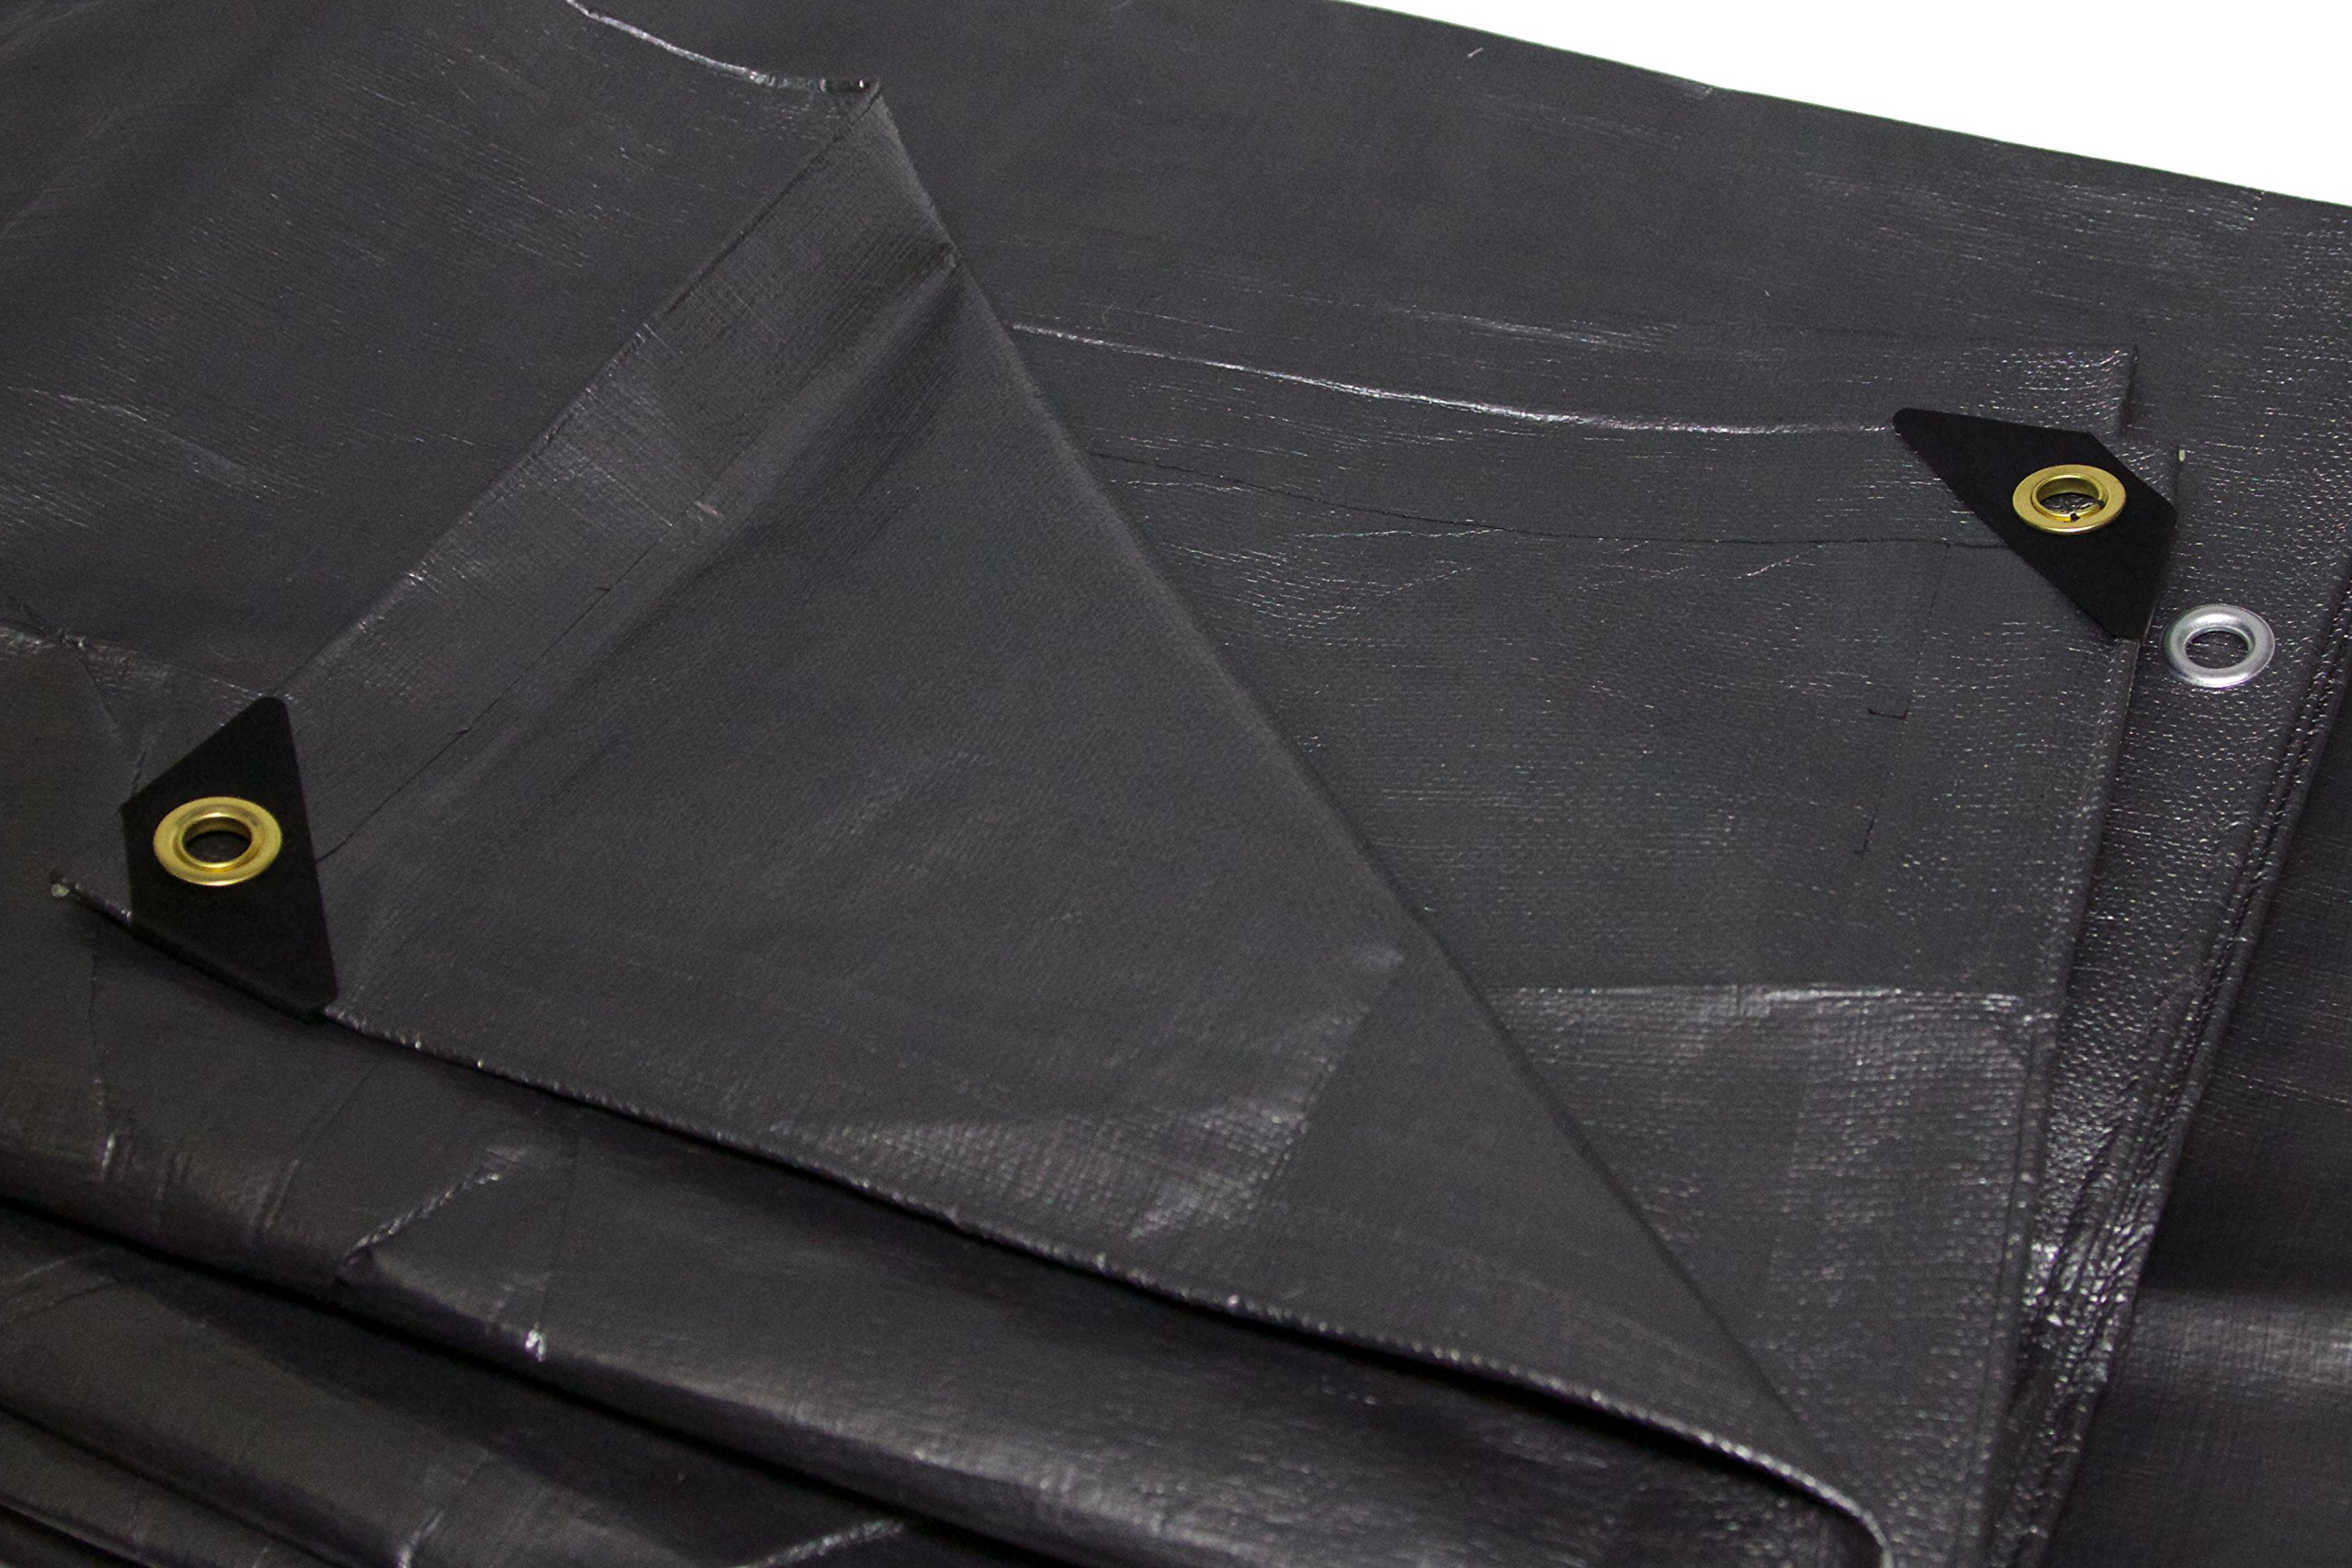 12ft. x 20ft. Silver Replacement Tarp for 10ft. x 20ft. Canopy by Tarps Direct